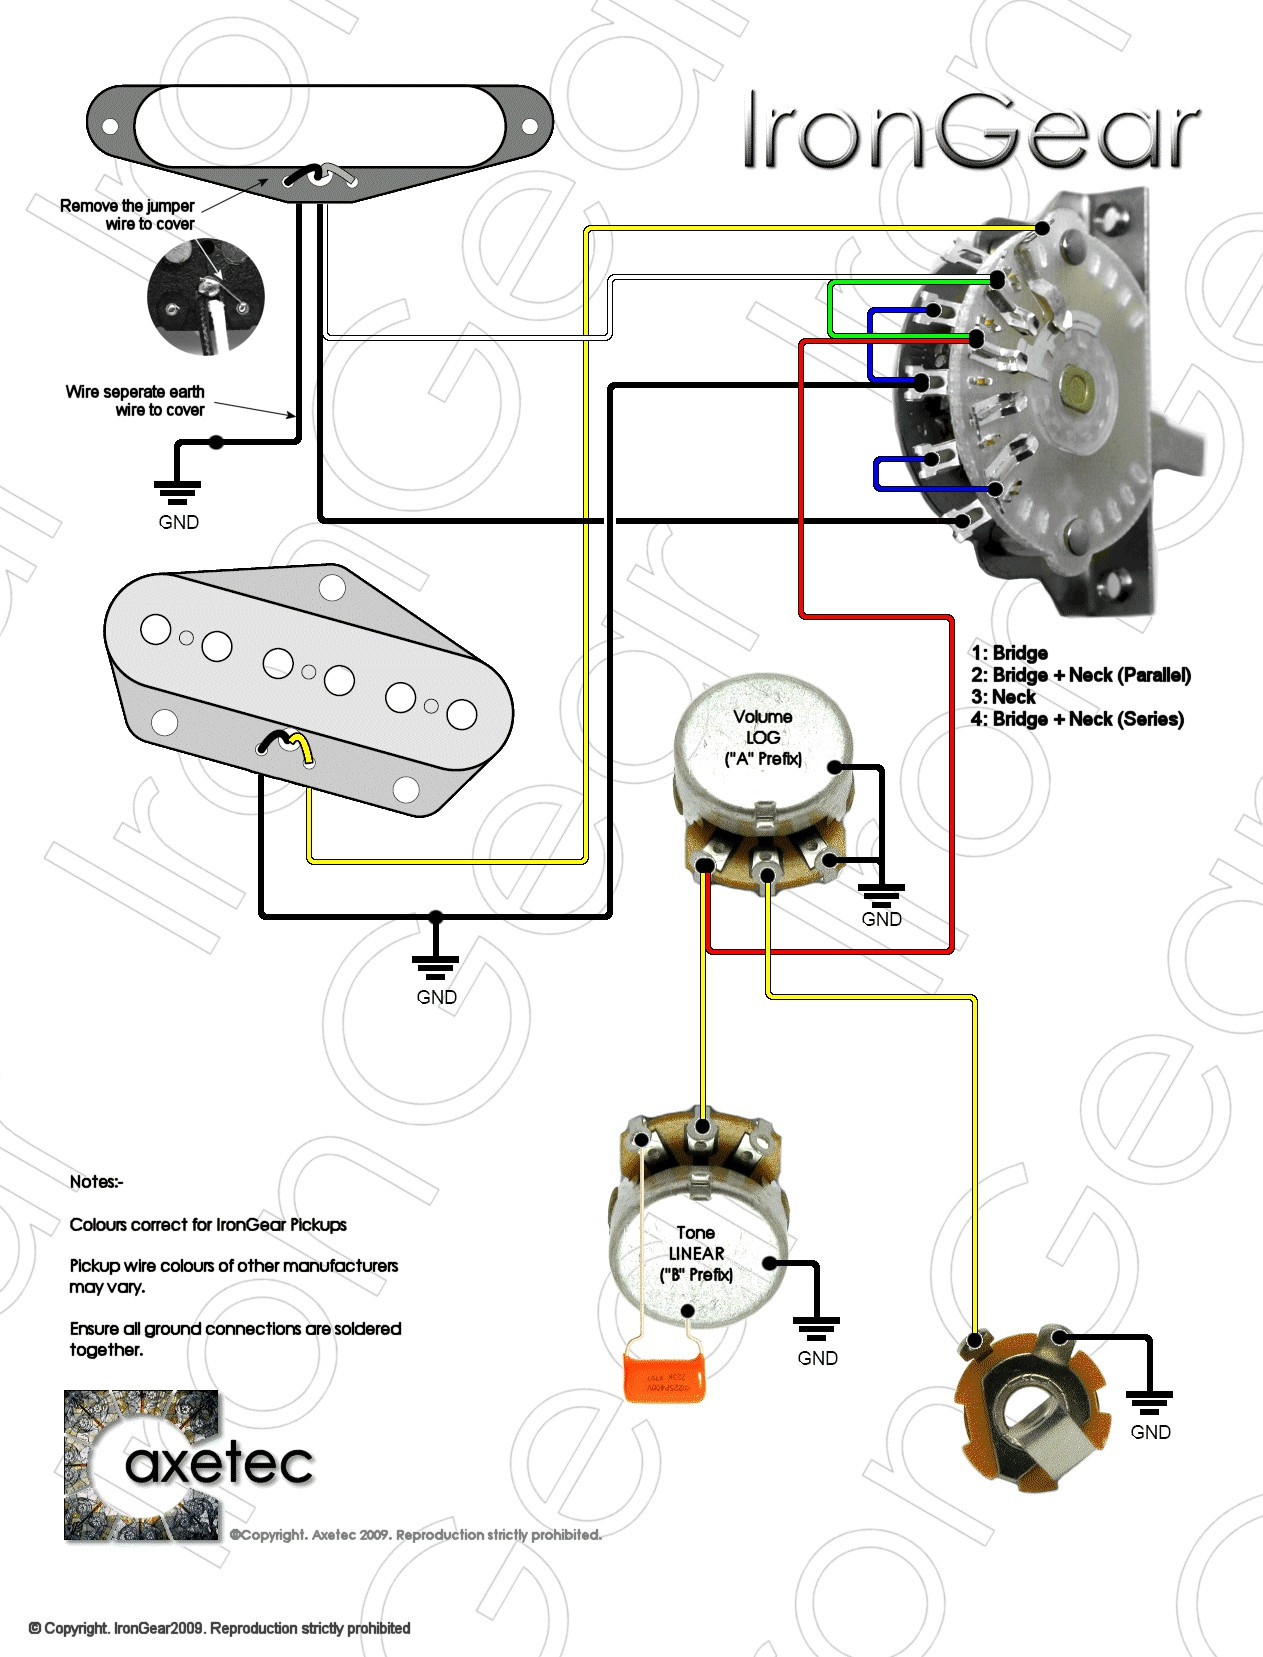 Telecaster 3 Way Switch : fender telecaster 3 way switch wiring diagram gallery ~ Vivirlamusica.com Haus und Dekorationen